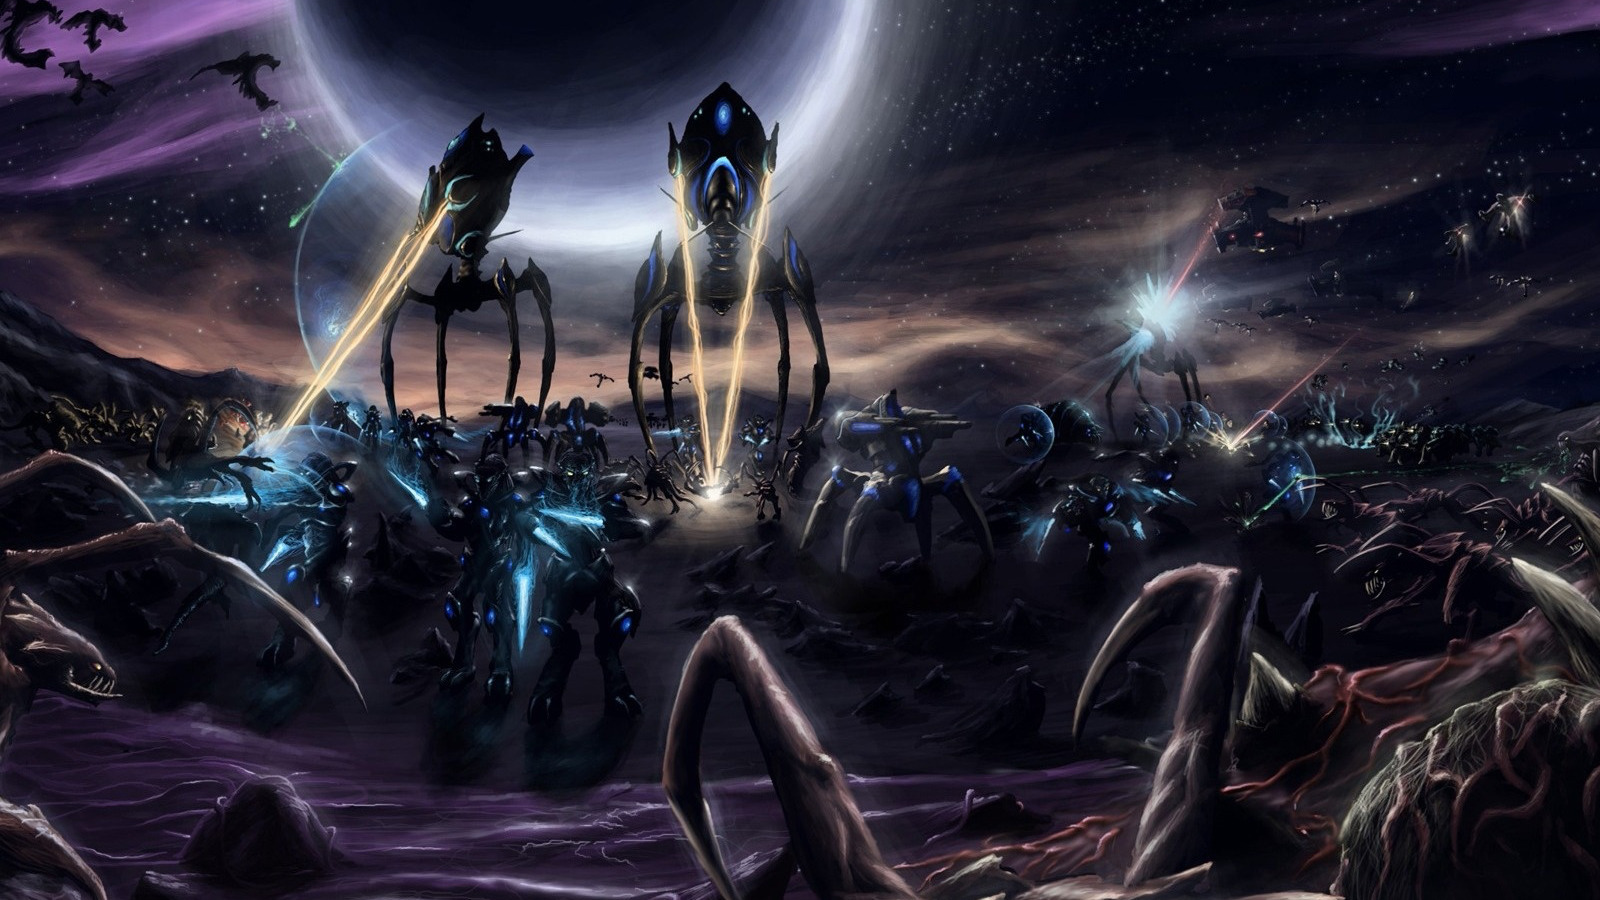 Protoss starcraft II game HD Wallpaper